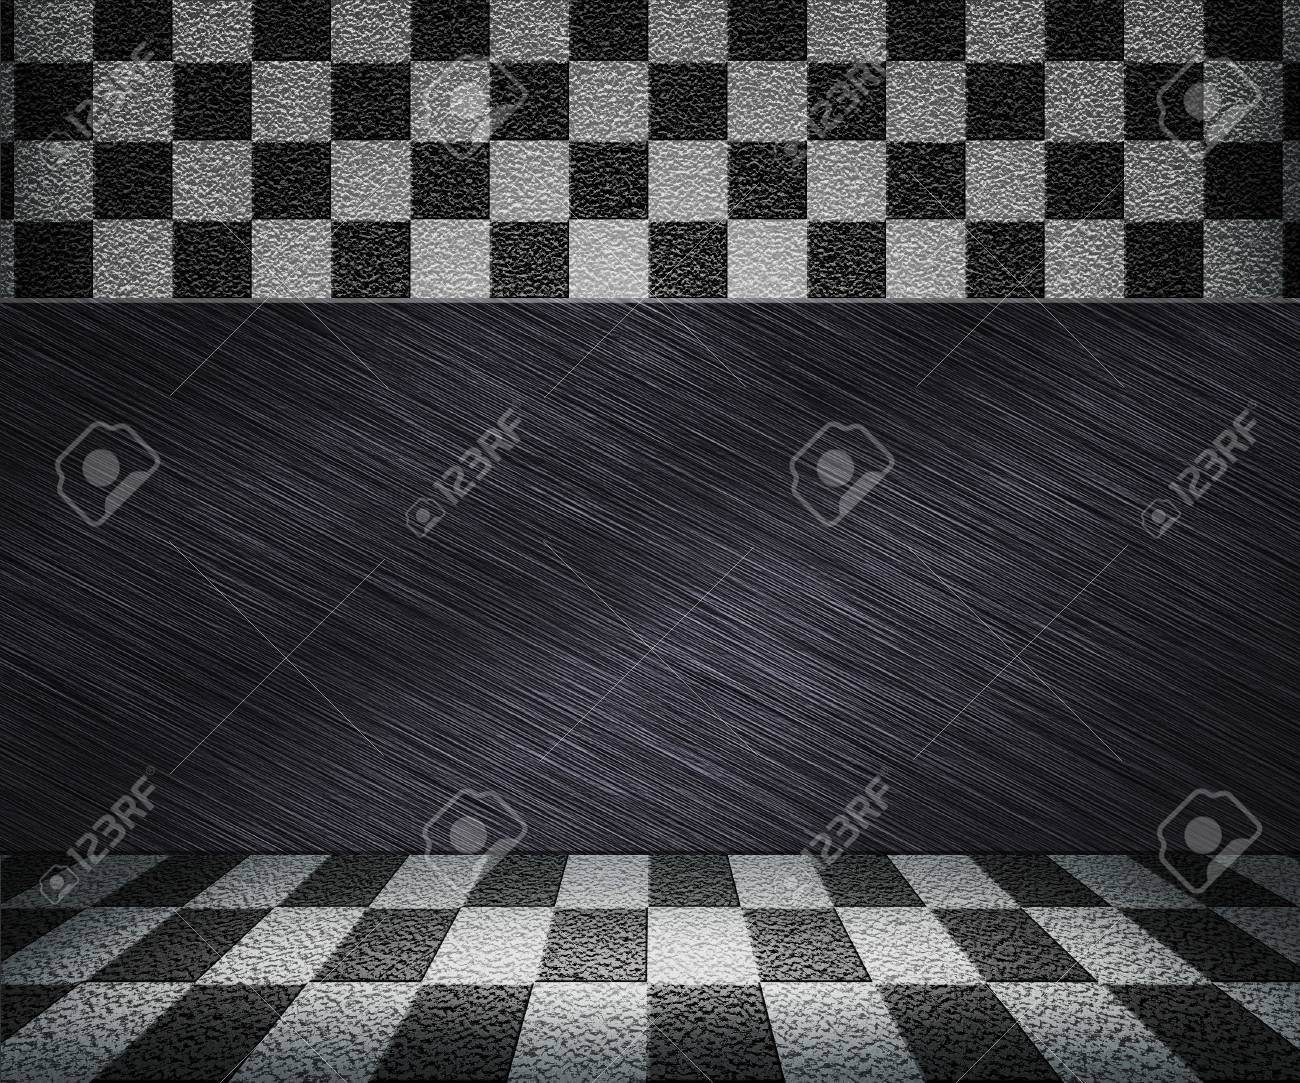 Board Room Background Stock Photo - 14056421